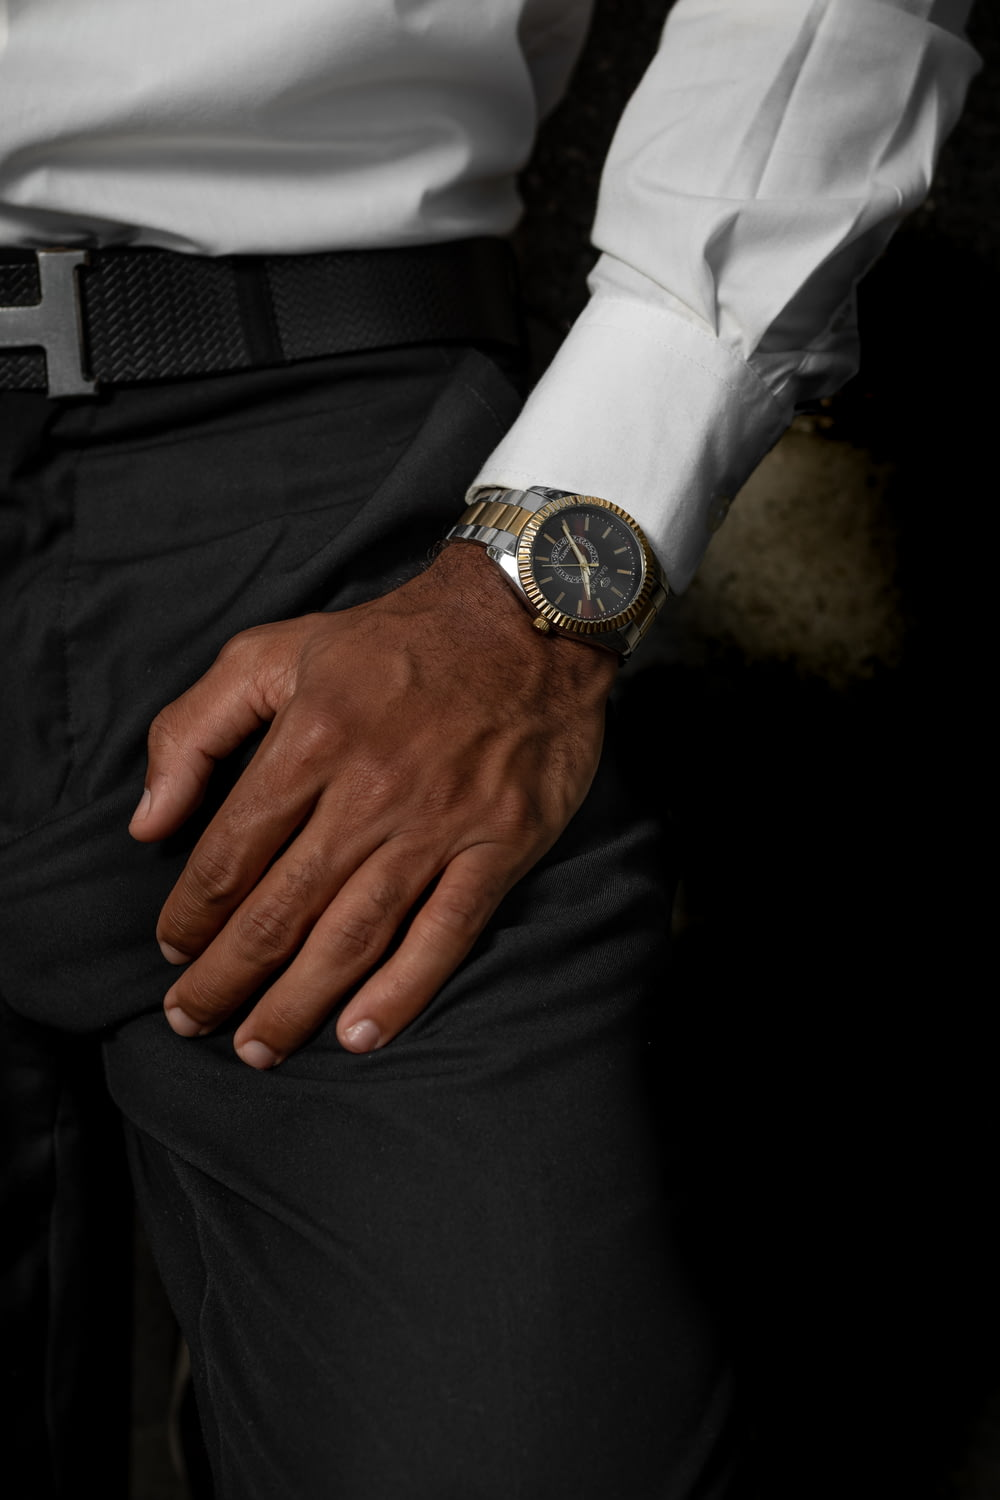 person in black pants wearing silver watch